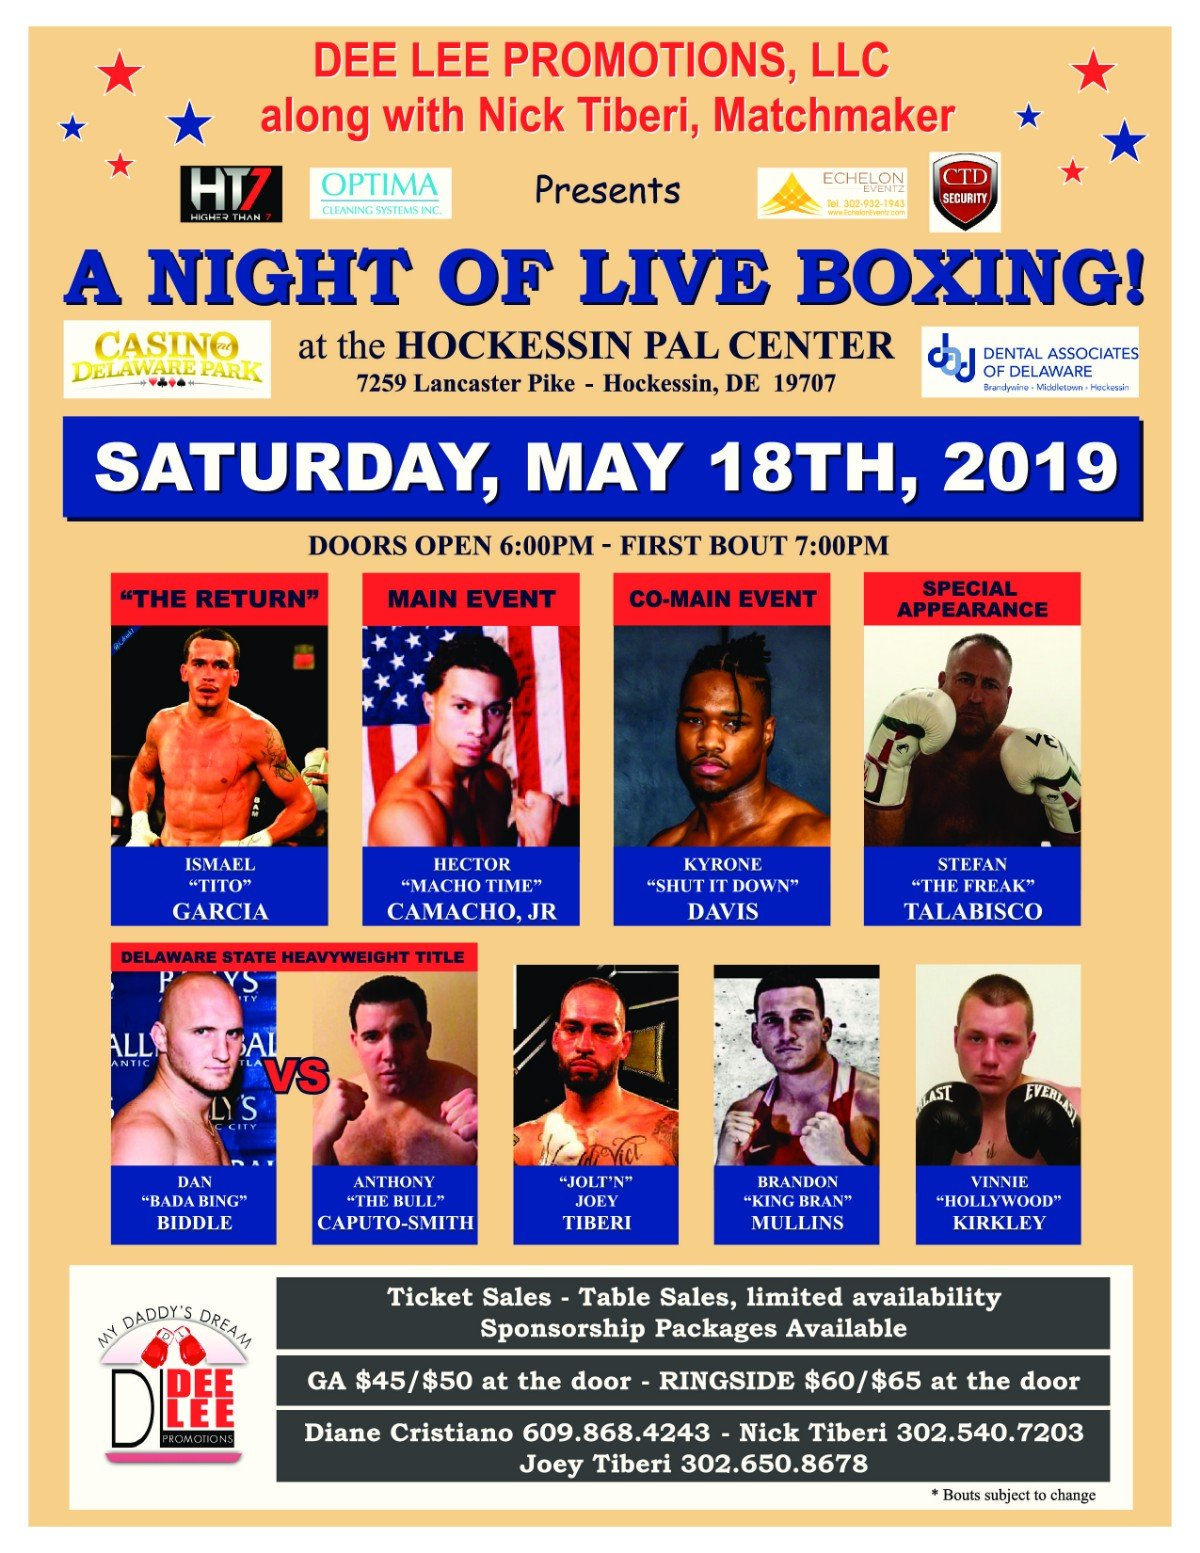 "-   Dee Lee Promotions, LLC. along with Nick Tiberi, Matchmaker presents  ""A NIGHT OF LIVE BOXING"" at the Hockessin PAL Center in Hockessin, DE, Saturday, May 18, 2019. Hector ""Macho Time"" Camacho, Jr (58-7-1/32 ko's) of San Jaun, Puerto Rico is set to headline Dee Lee's  latest top line professional fight card and Delaware fight fans are in for a treat.  Victor Abreu (9-5-0/5 ko's), Dominican Republic, has signed on to face Camacho, Jr. in an 8 round middleweight battle and both fighters have promised that one of them will see the canvas. Camacho, Jr. may be the son of a legend but, as his record will attest,66 bouts with 32 knockouts is hardly fighting in anyone's shadow."